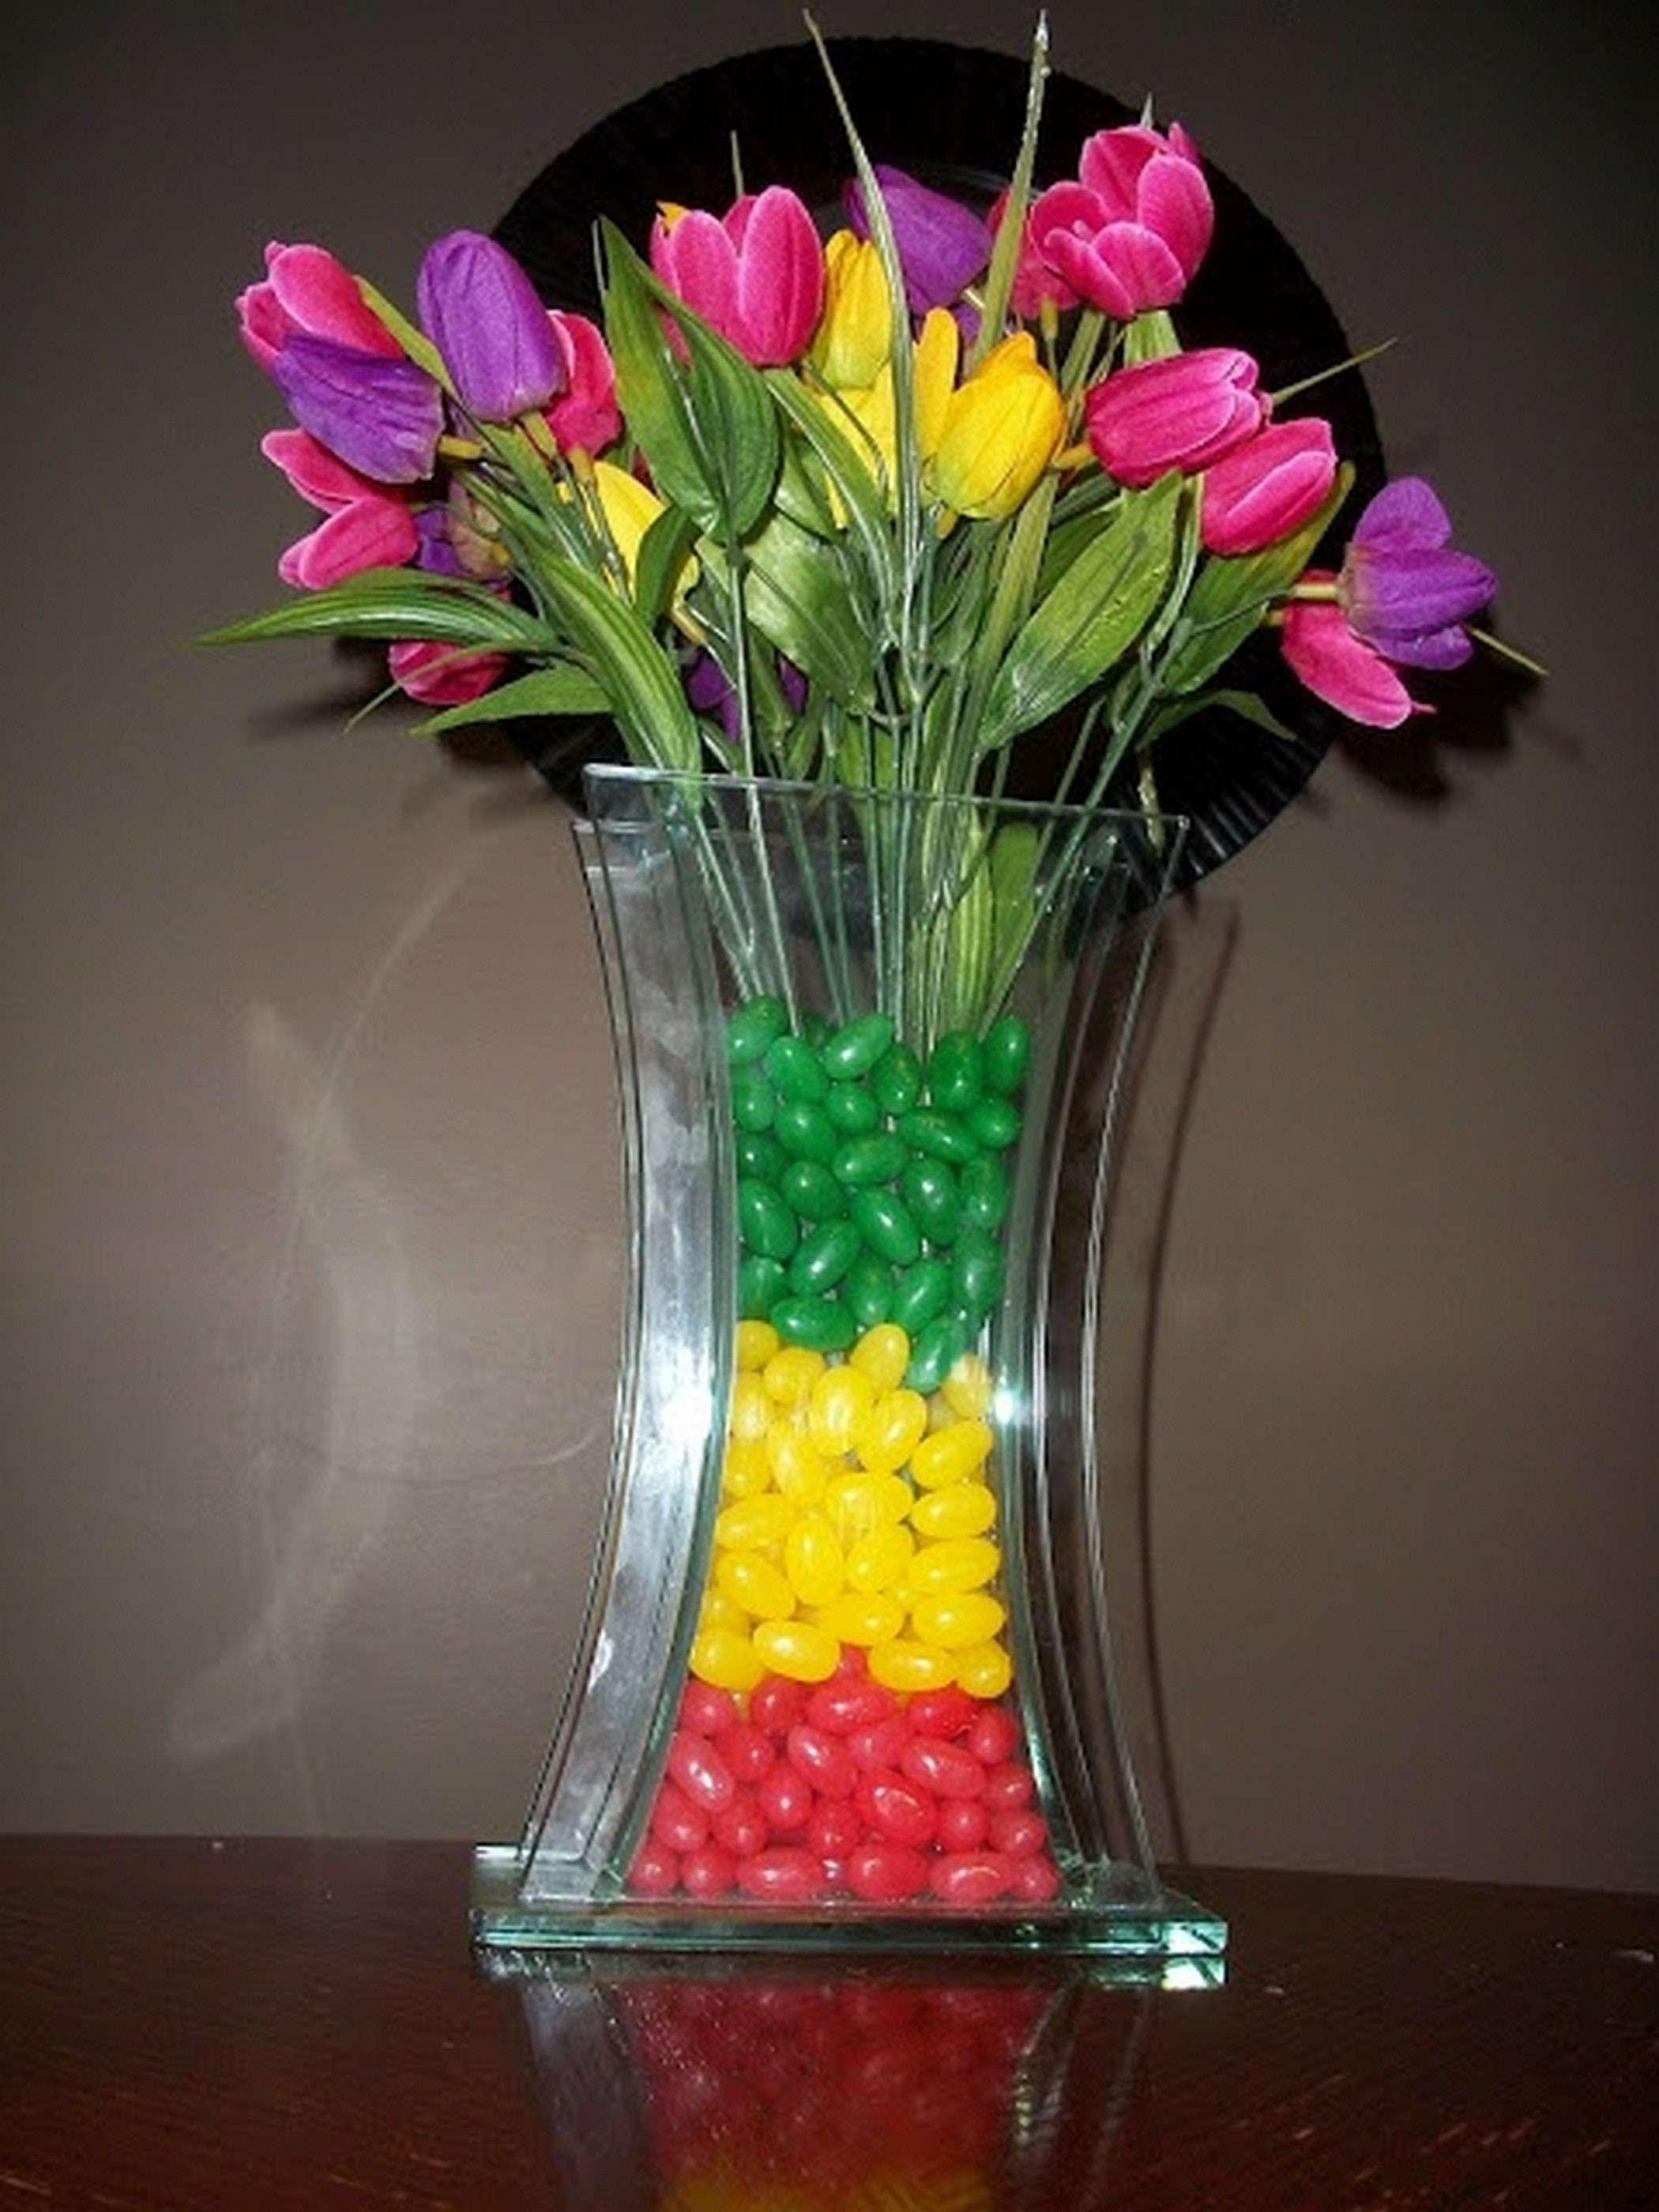 Decorative Floor Vase Fillers Of Easy Diy Ideas Beautiful 15 Cheap and Easy Diy Vase Filler Ideas 3h Throughout Easy Diy Ideas Beautiful 15 Cheap and Easy Diy Vase Filler Ideas 3h Vases Flower I